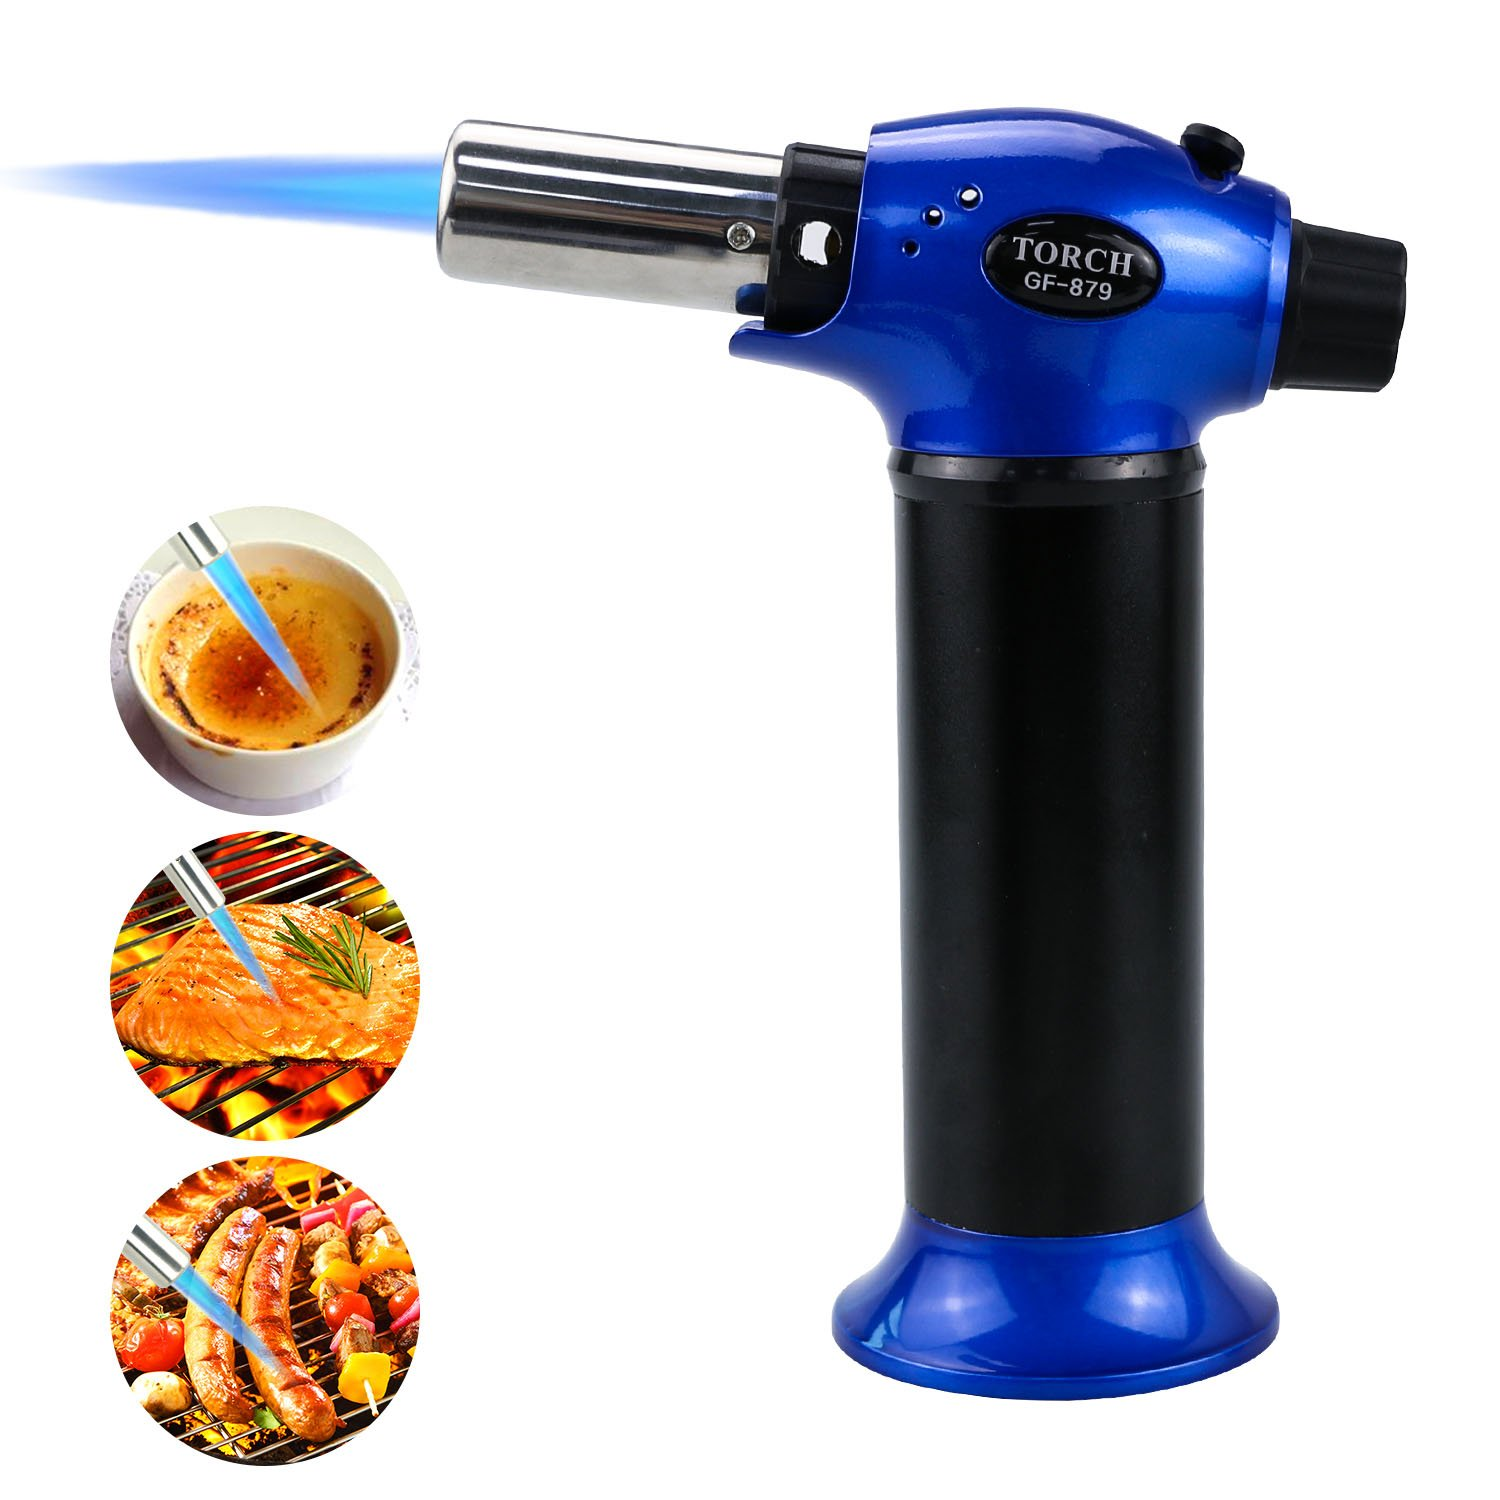 Updated Kitchen Torch Lighter, TedGem Refillable Blow Torch Culinary Torch Cooking Torch Butane Torch Flame Lighter with Safety Lock Adjustable Temperature & Flame for Creme Brulee BBQ,Gas Not Include